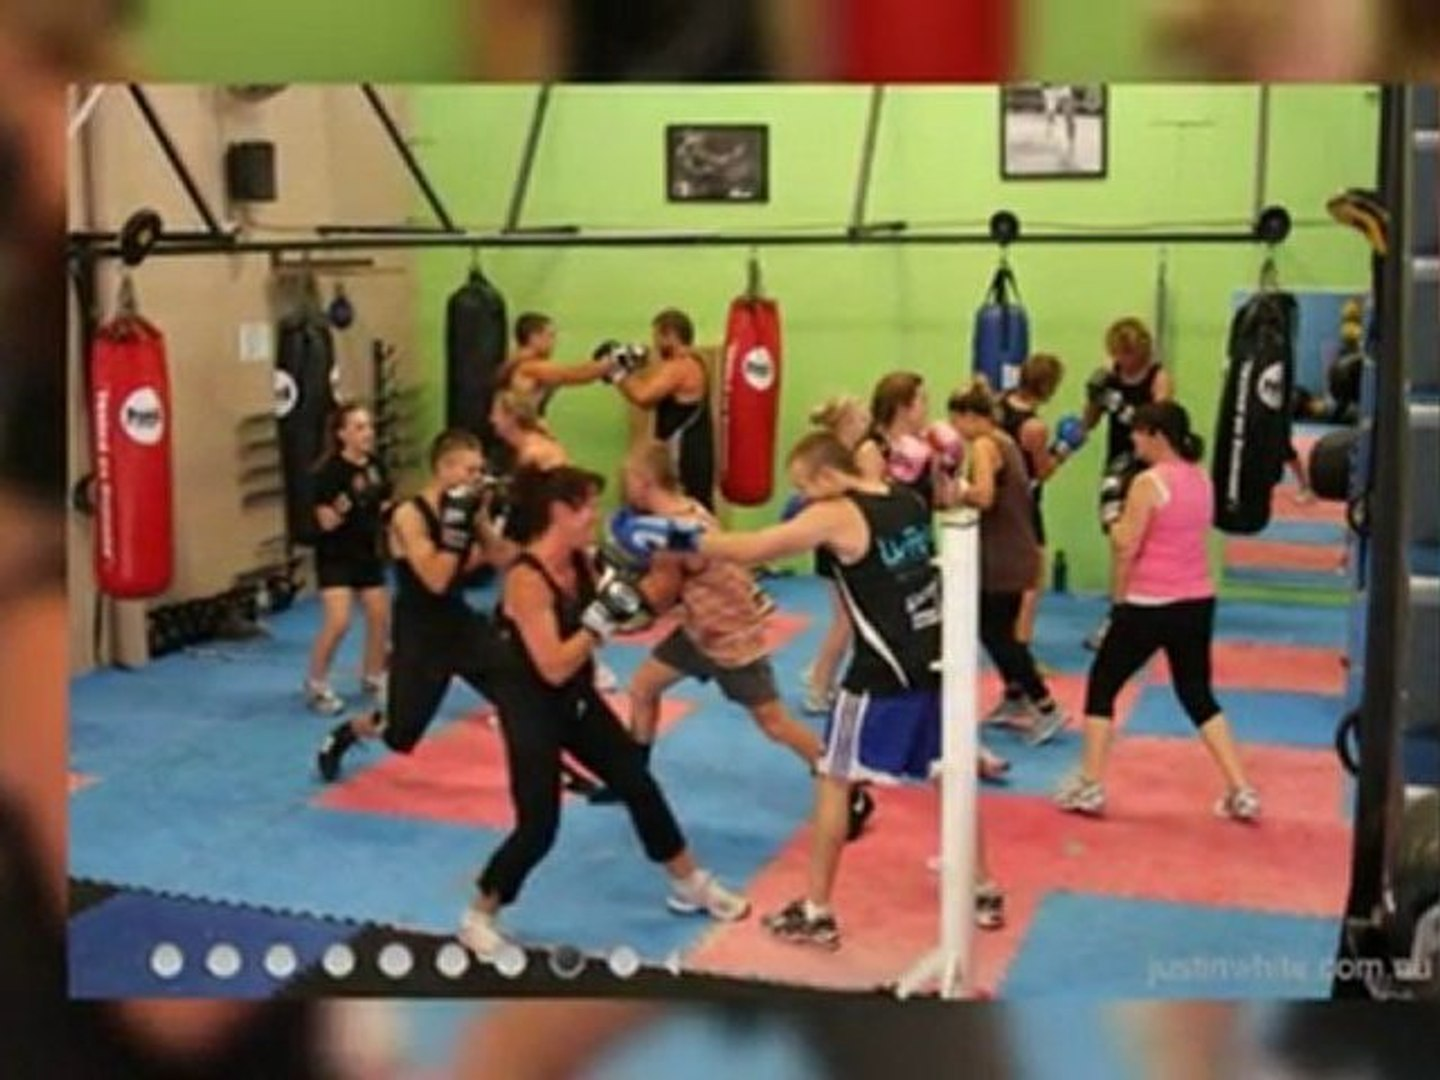 boxing academy Clarkson, boxing gym Clarkson, boxing for fitness Clarkson, boxing gym membership Cla